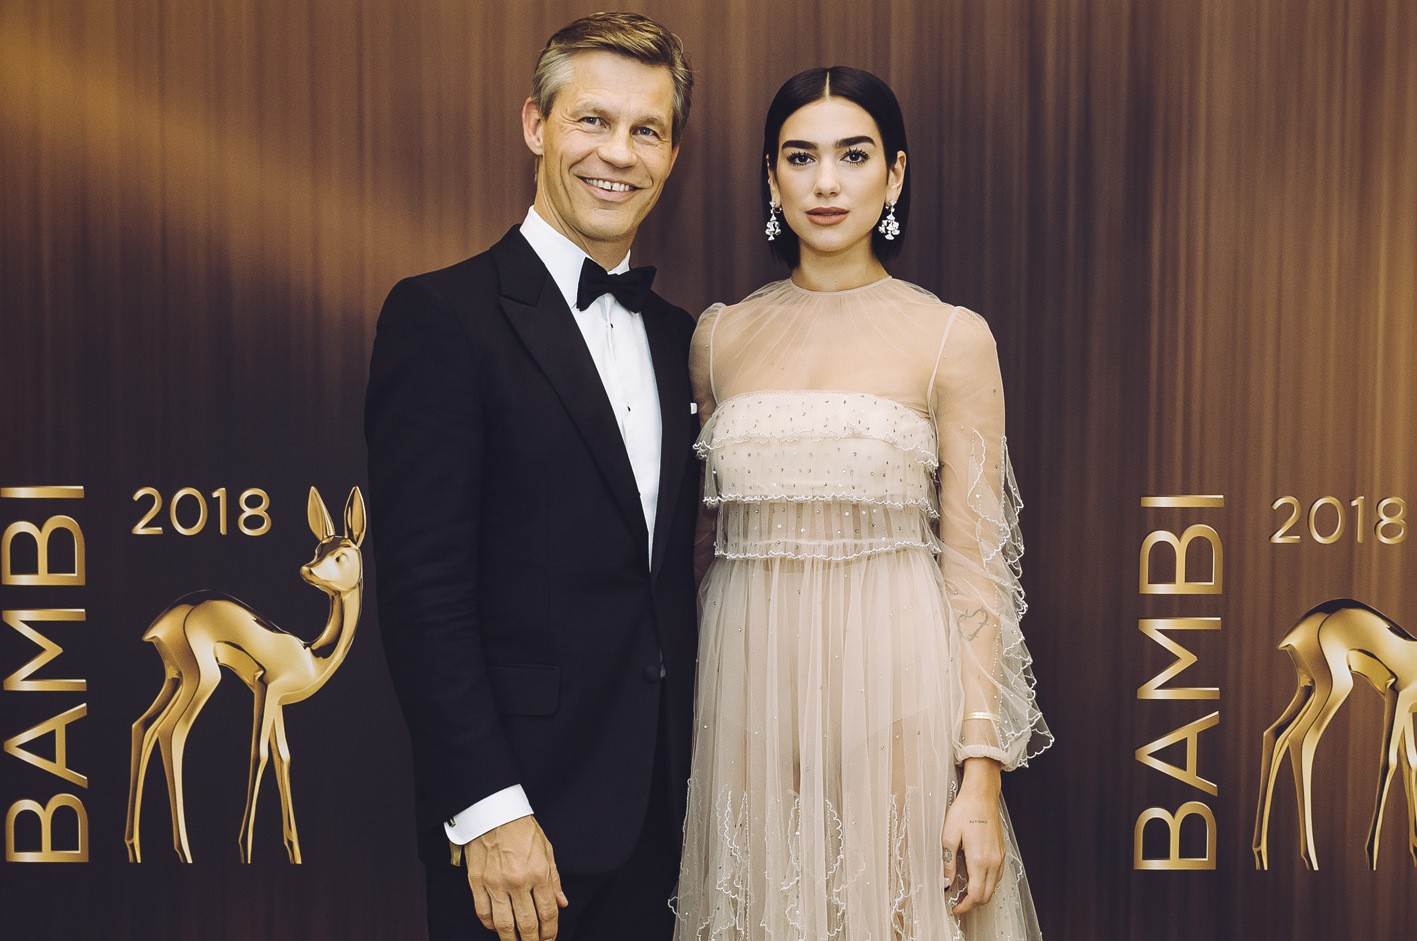 Frank Briegmann, President & CEO Central Europe Universal Music and Deutsche Grammophon, and Duo Lipa at the 2018 Bambi Awards